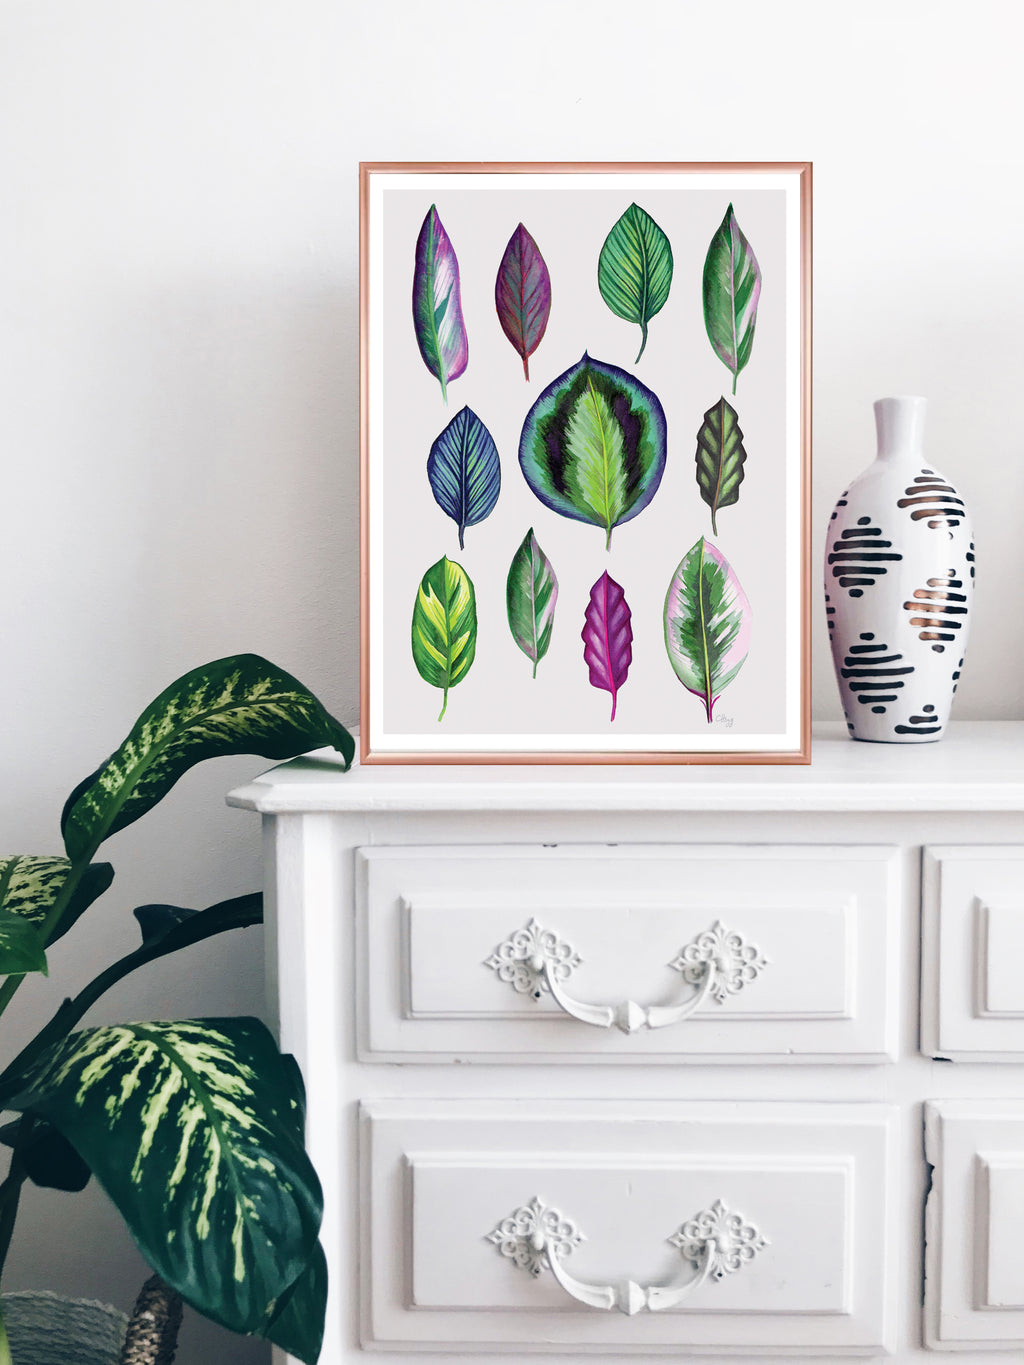 'Colourful Leaves' Botanical Watercolour limited edition Signed Giclee Art Print